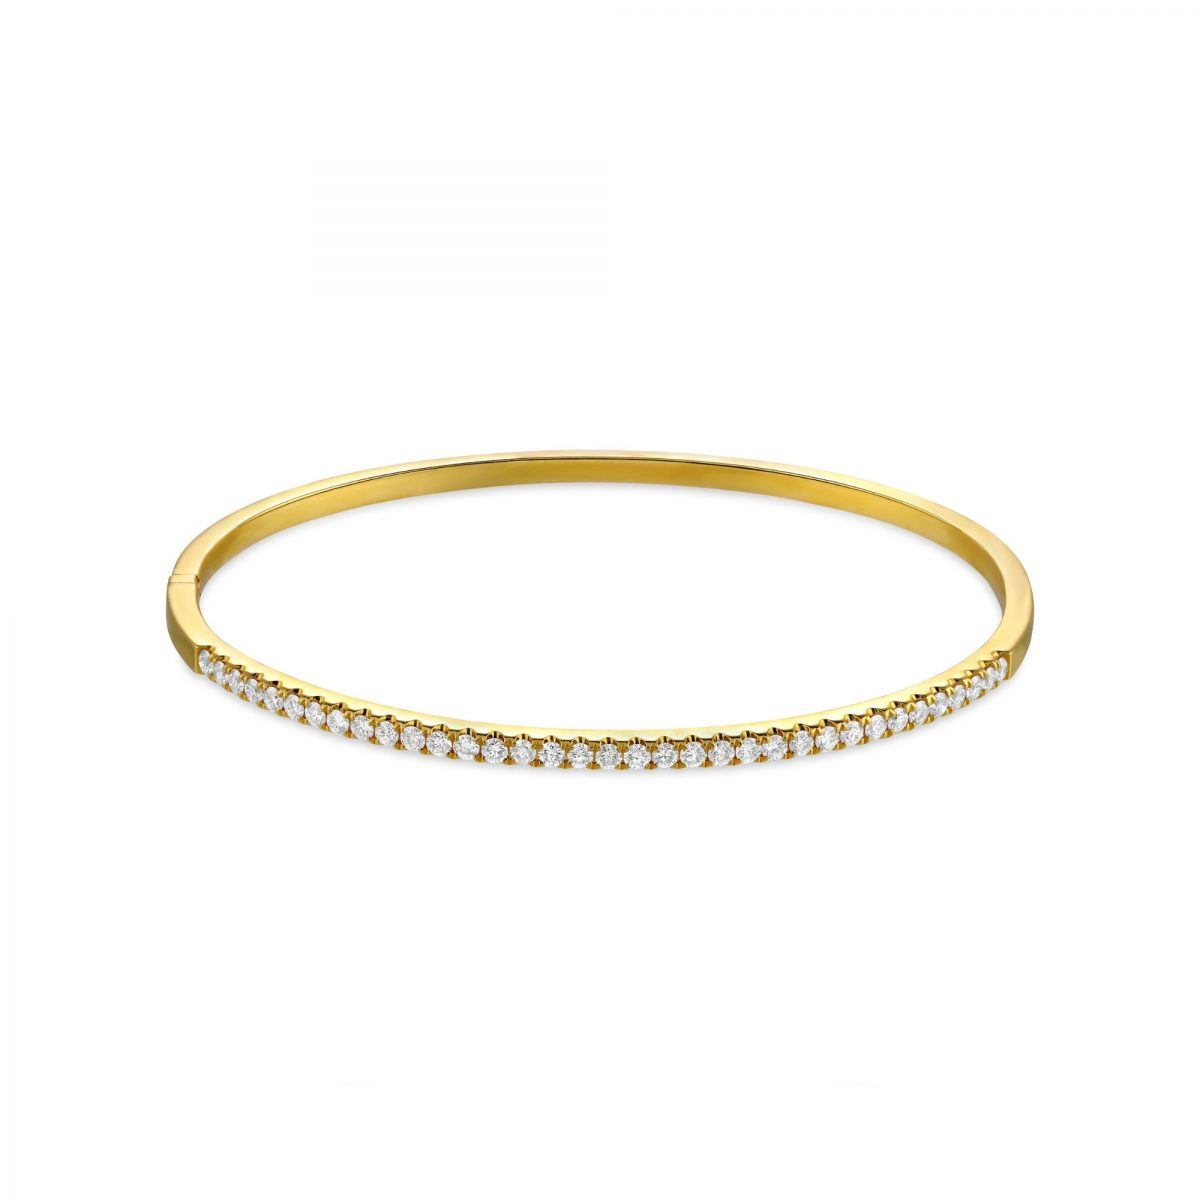 product/y/e/yellow-gold-diamond-stacking-bangle-1.jpg;;product/y/e/yellow-gold-diamond-stacking-bangle-2.jpg;;product/y/e/yellow-gold-diamond-stacking-bangle-3.jpg;;product/d/m/dmr-packaging_206_1_12_30_1_1_1_2.jpg